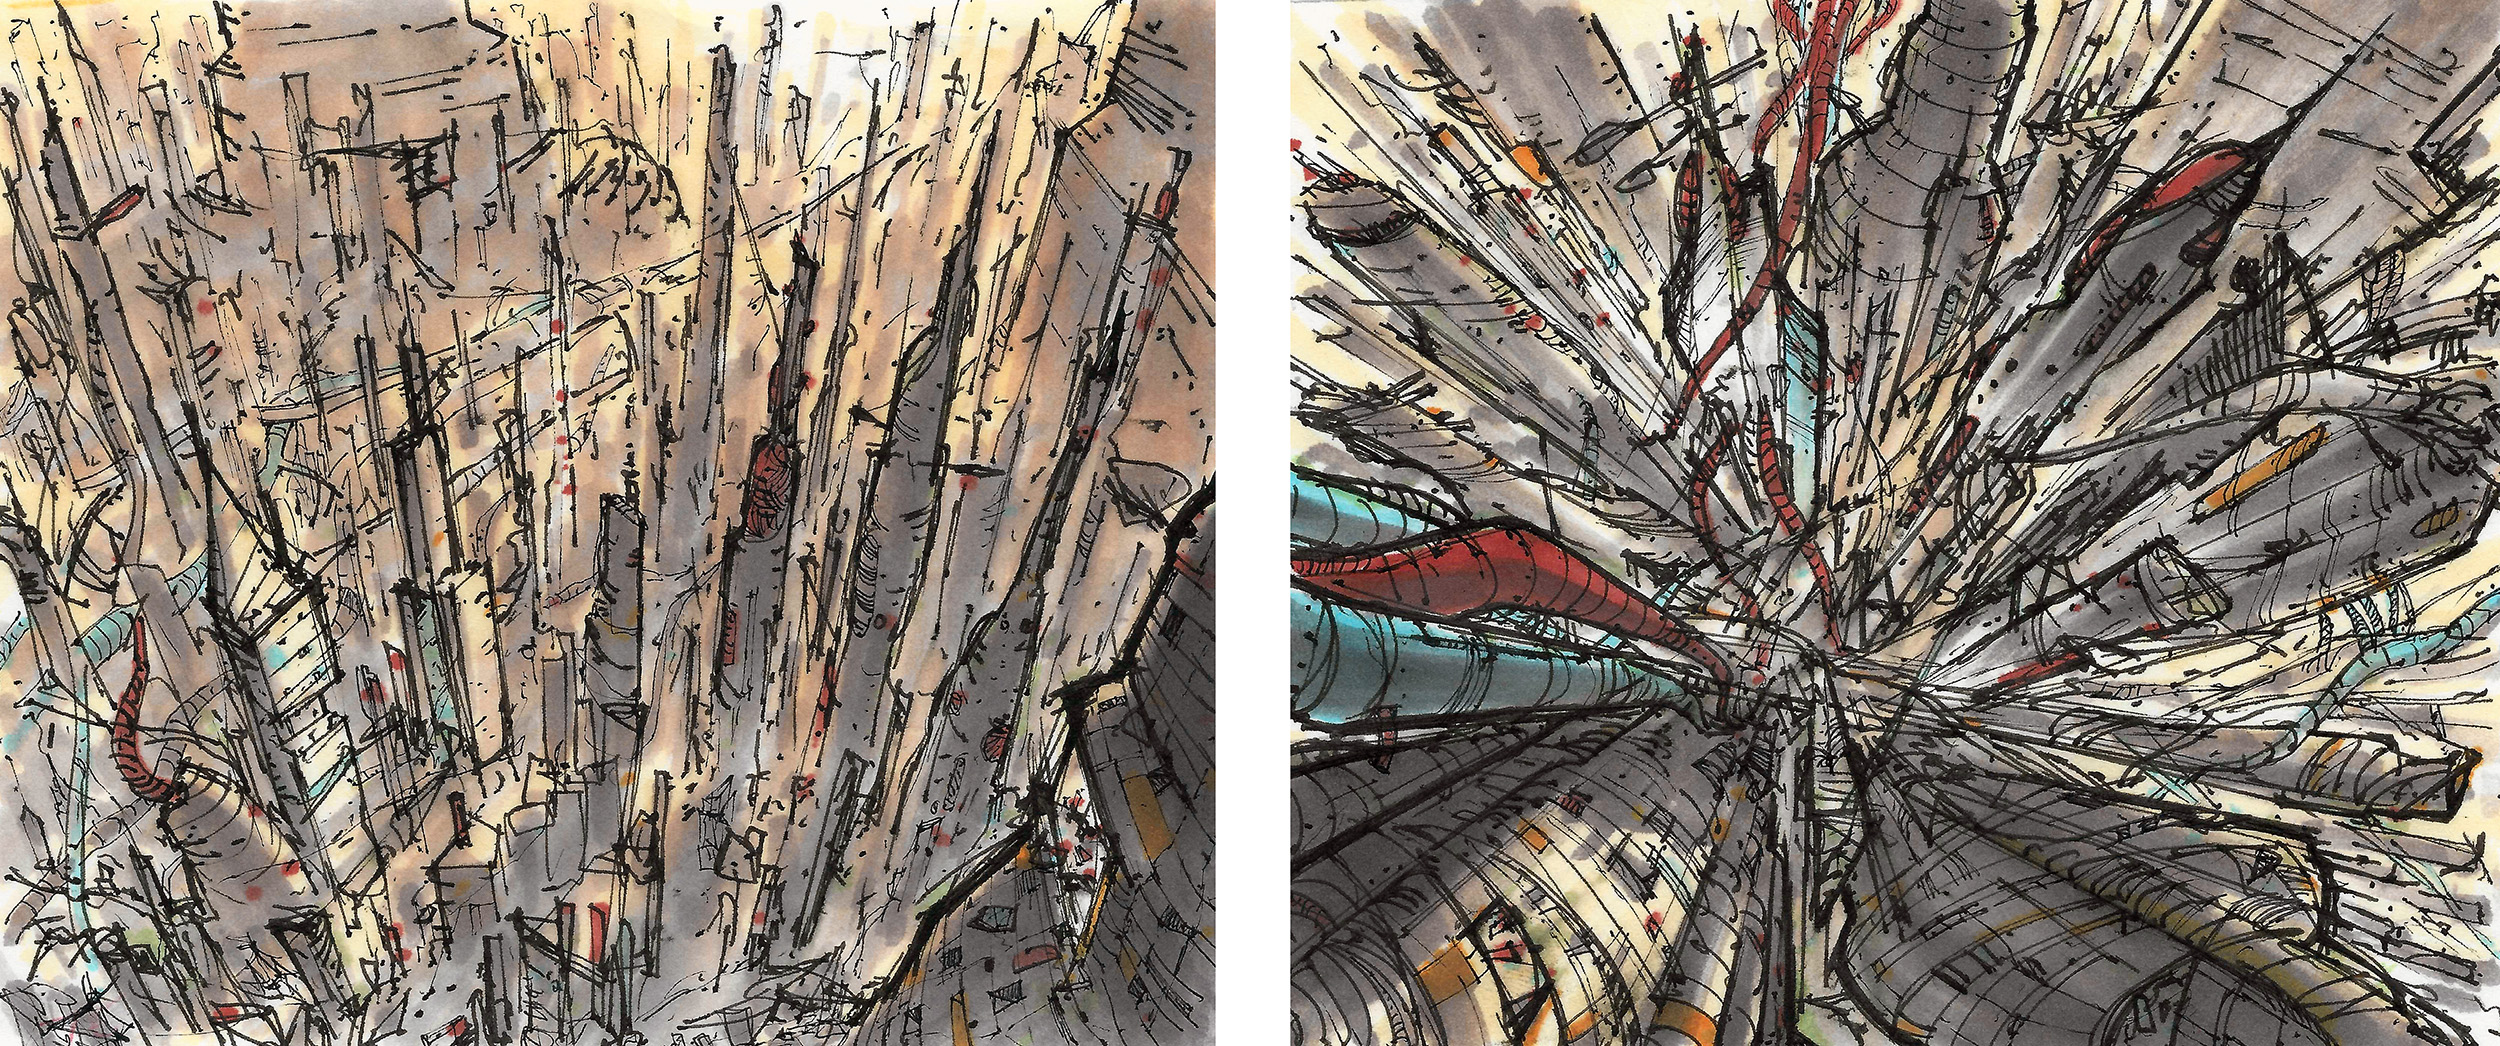 abandoned city - from a personal project called Silverback Last - pen & marker sketches by Jeremy Rumas